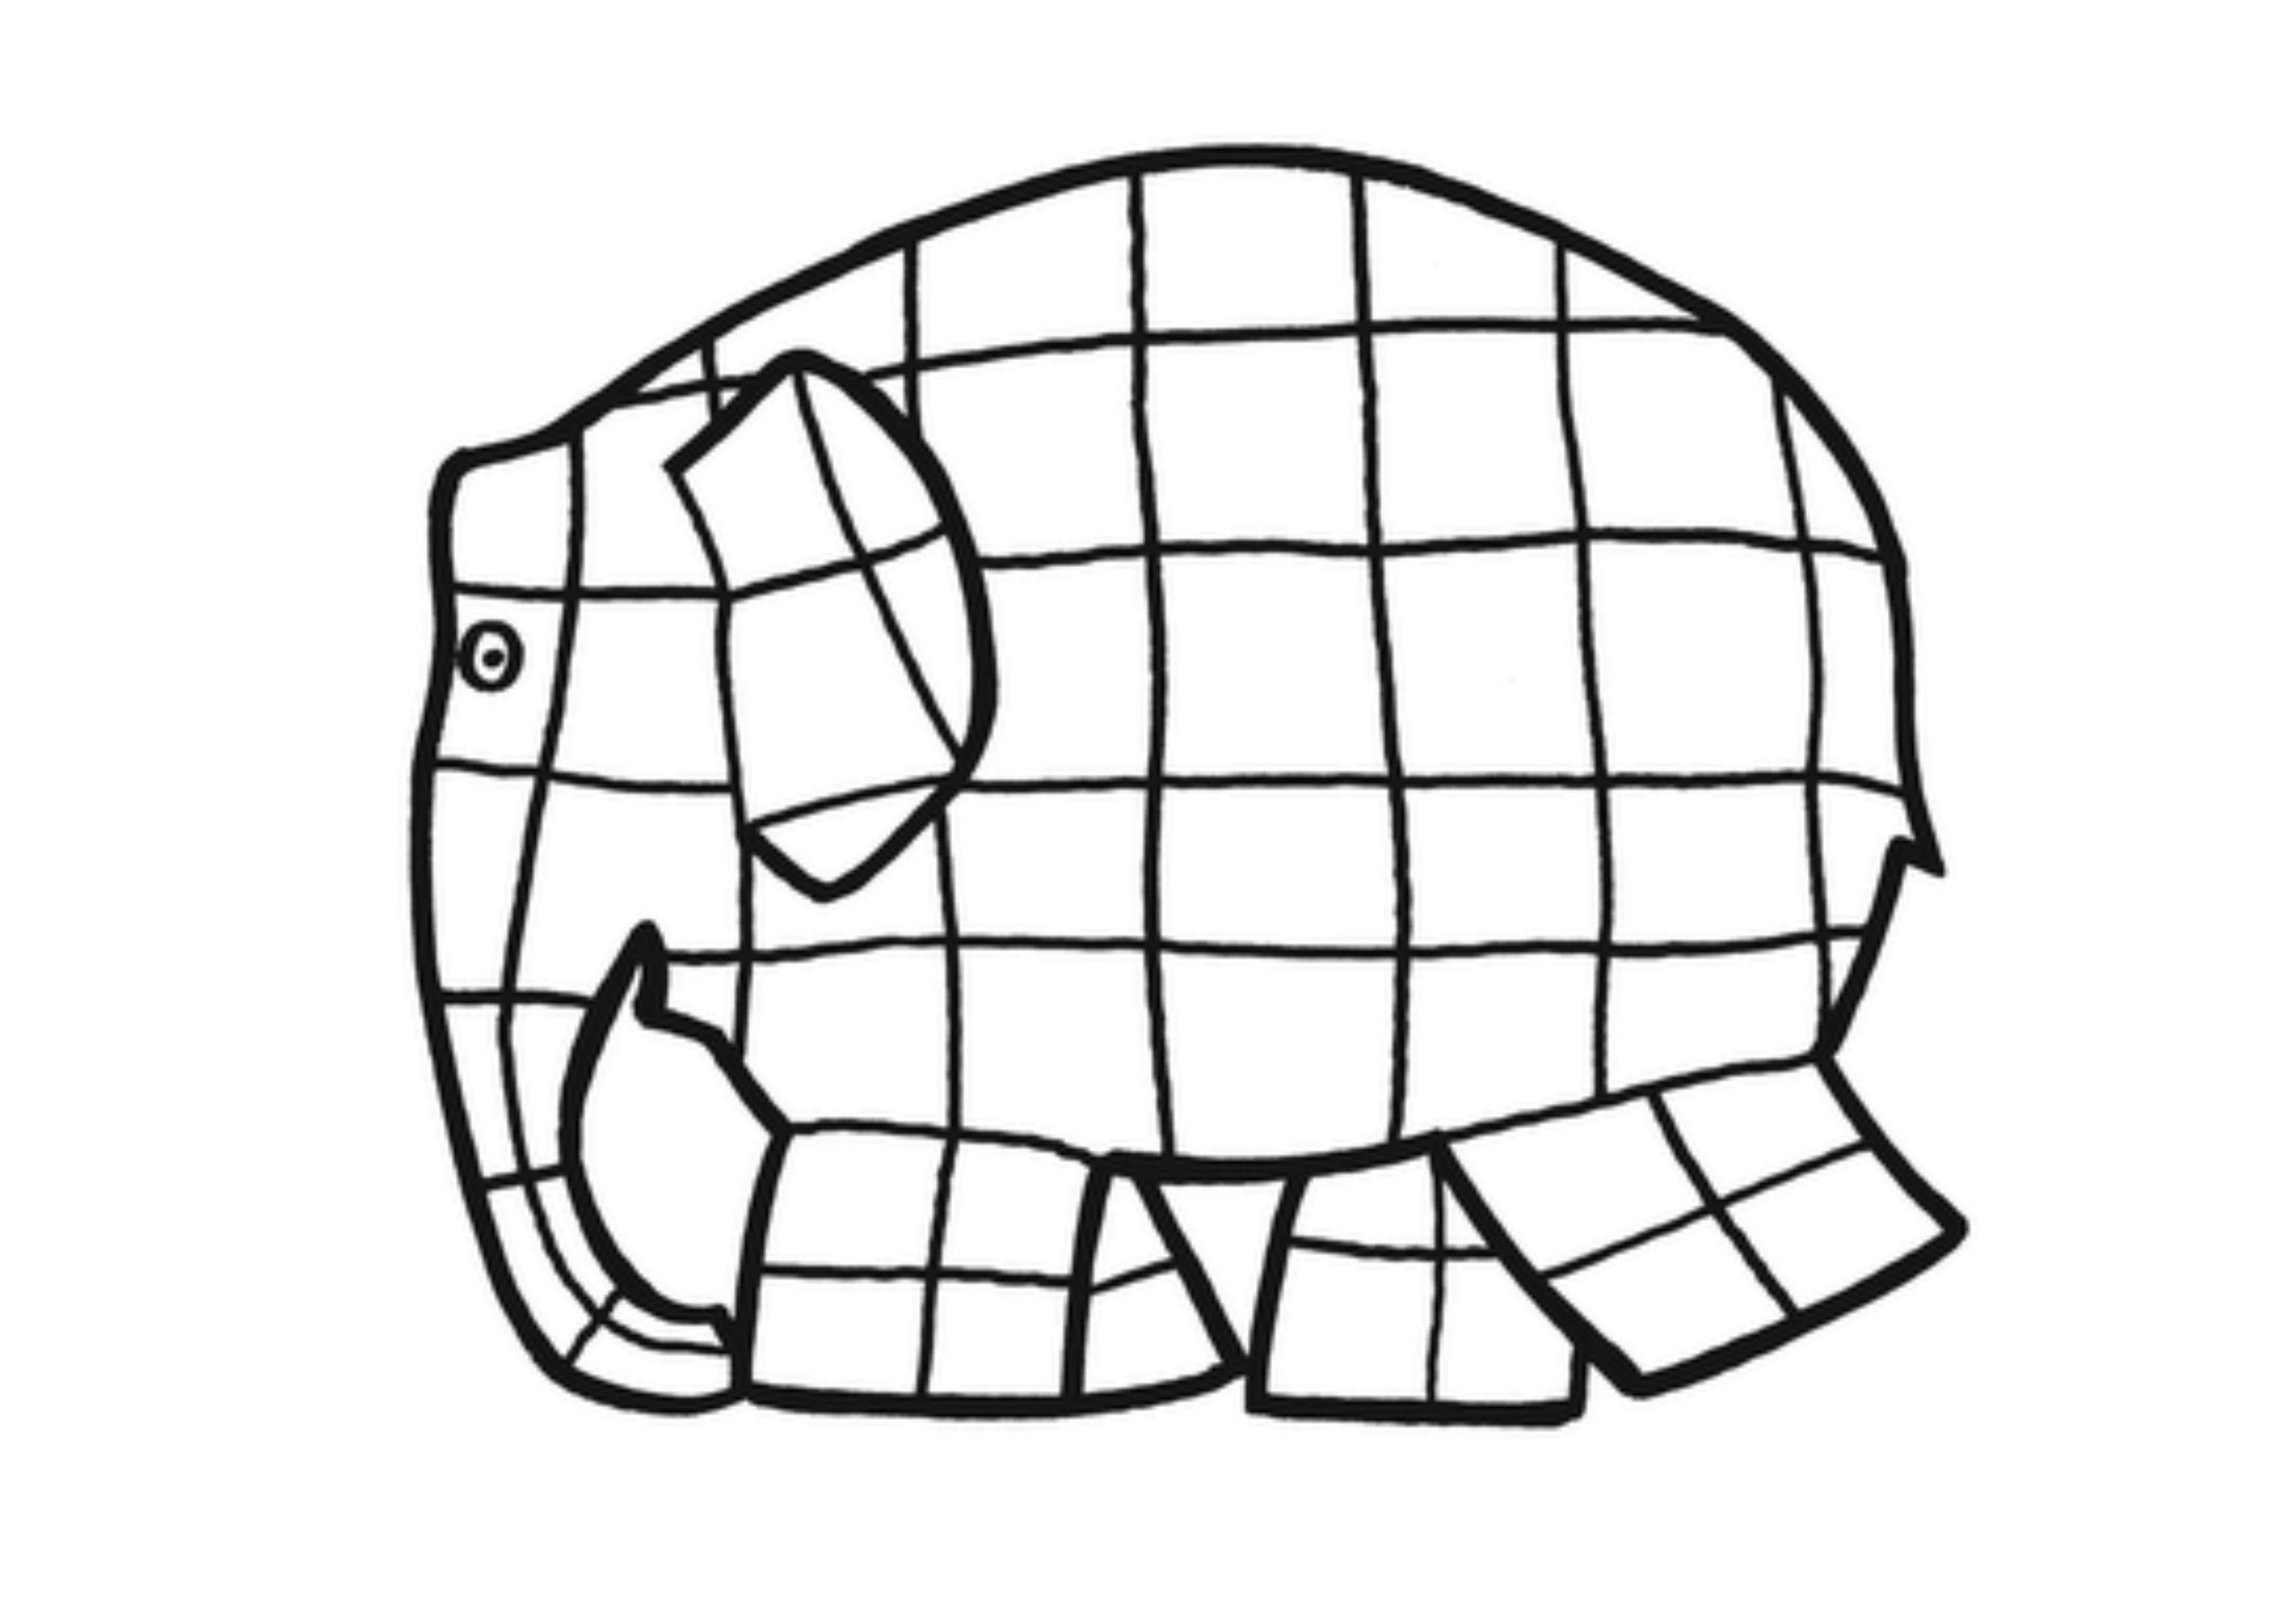 Coloring Book Pages With Elephant : Elmer elephant coloring page clipart best